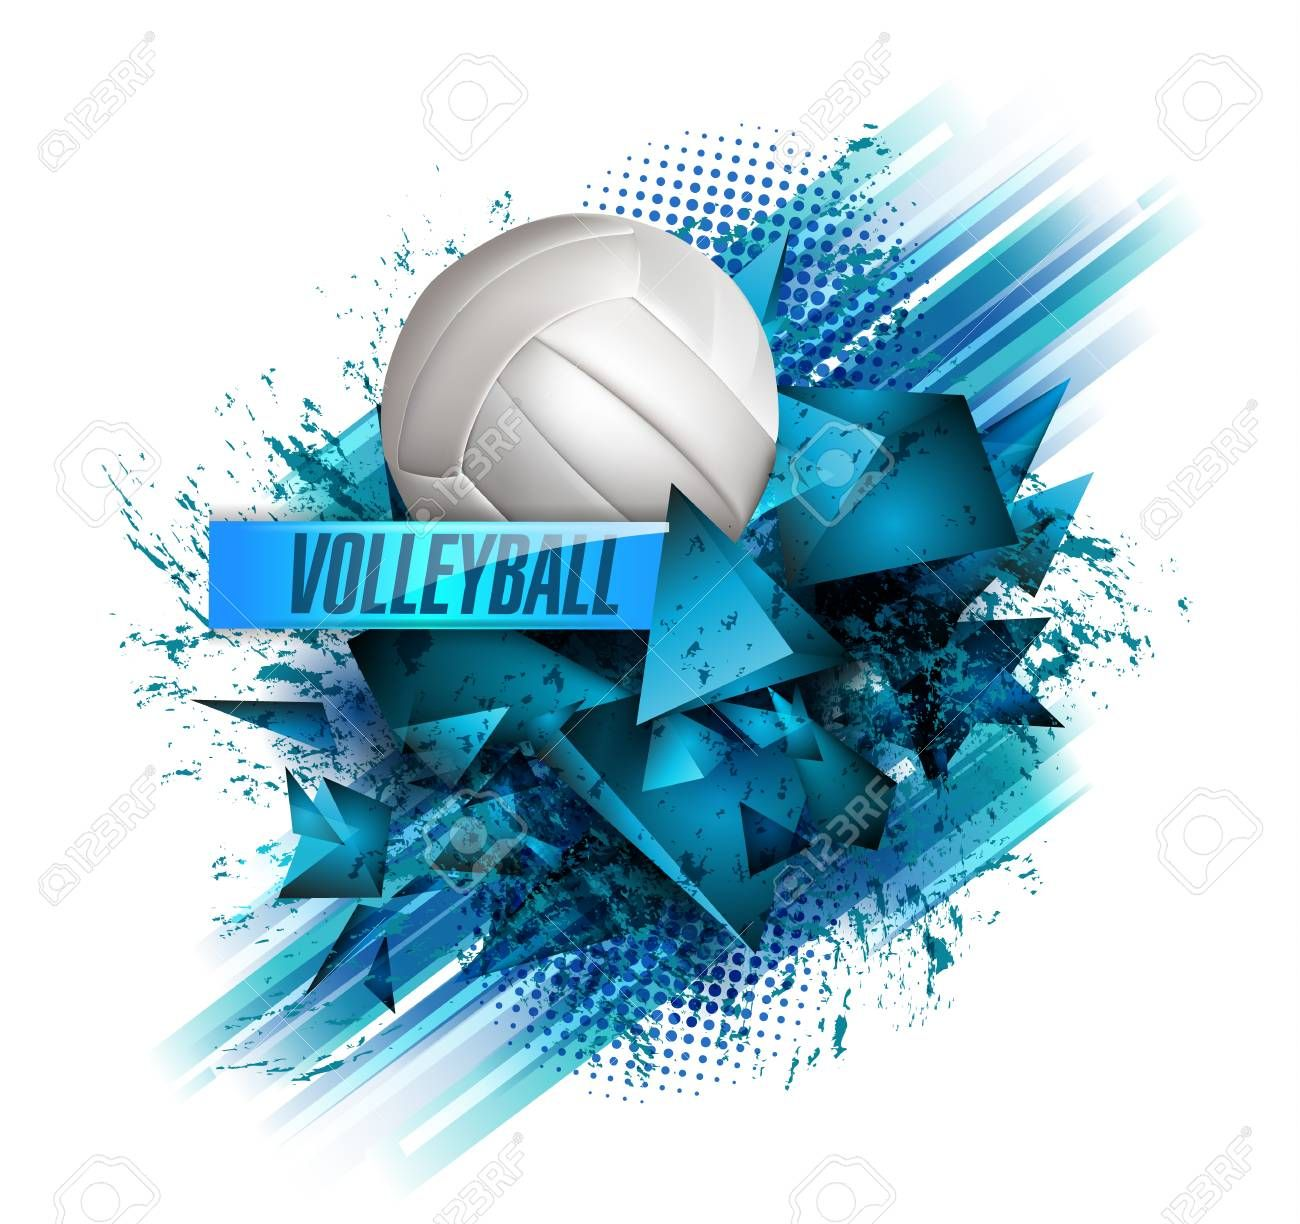 Volleyball Text On An Abstract Background Illustration Aff Text Volleyball Abstract Illustration Backg Abstract Backgrounds Abstract Illustration